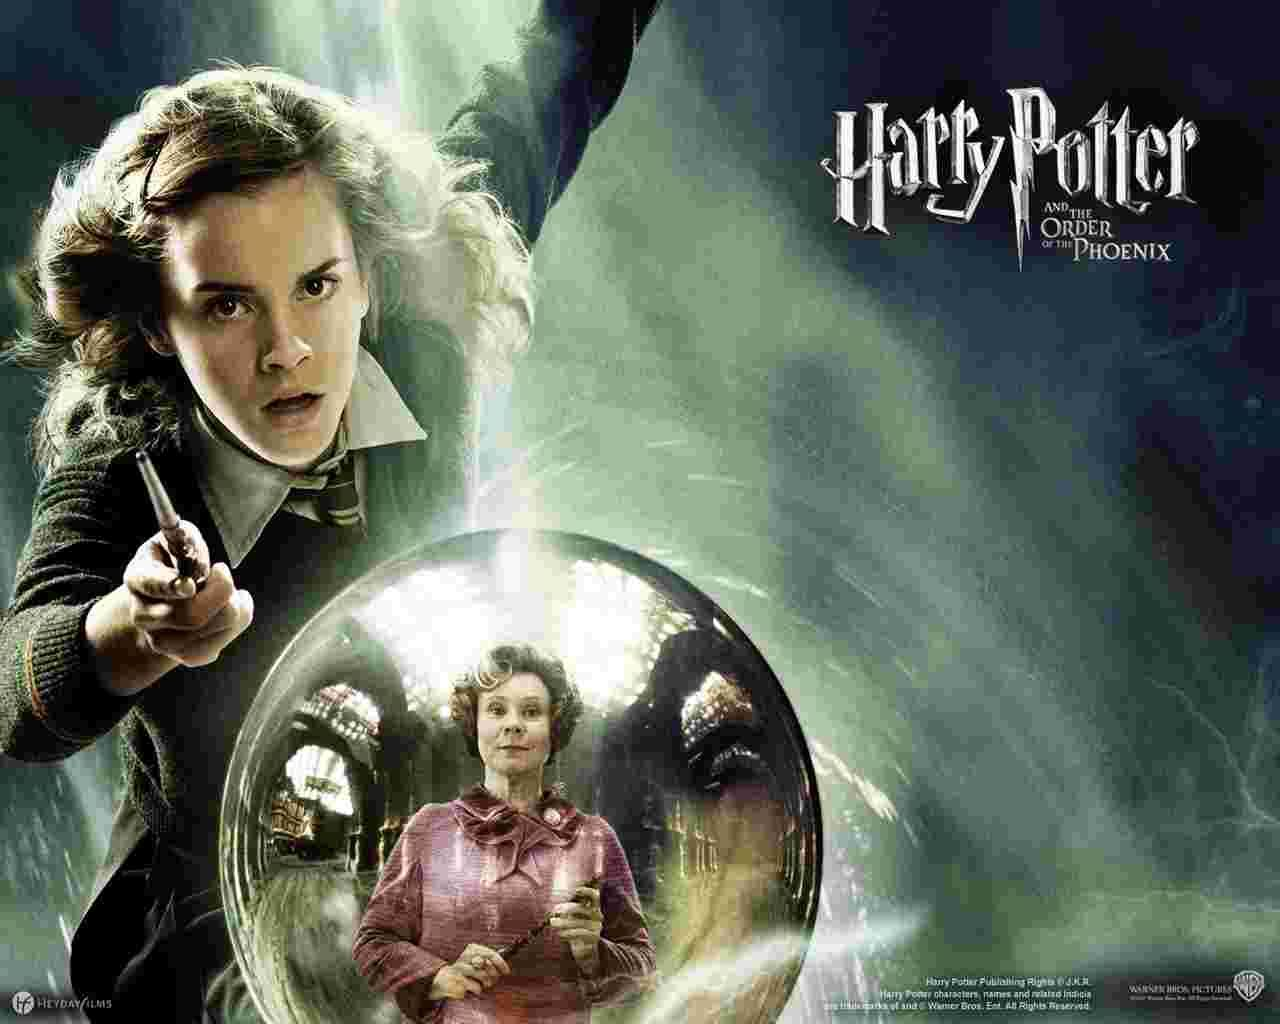 Harry Potter And The Order Of The Phoenix Posters Harry Potter And The Order Of The Phoenix 369 Harry Potter Movies Harry Potter Hermione First Harry Potter